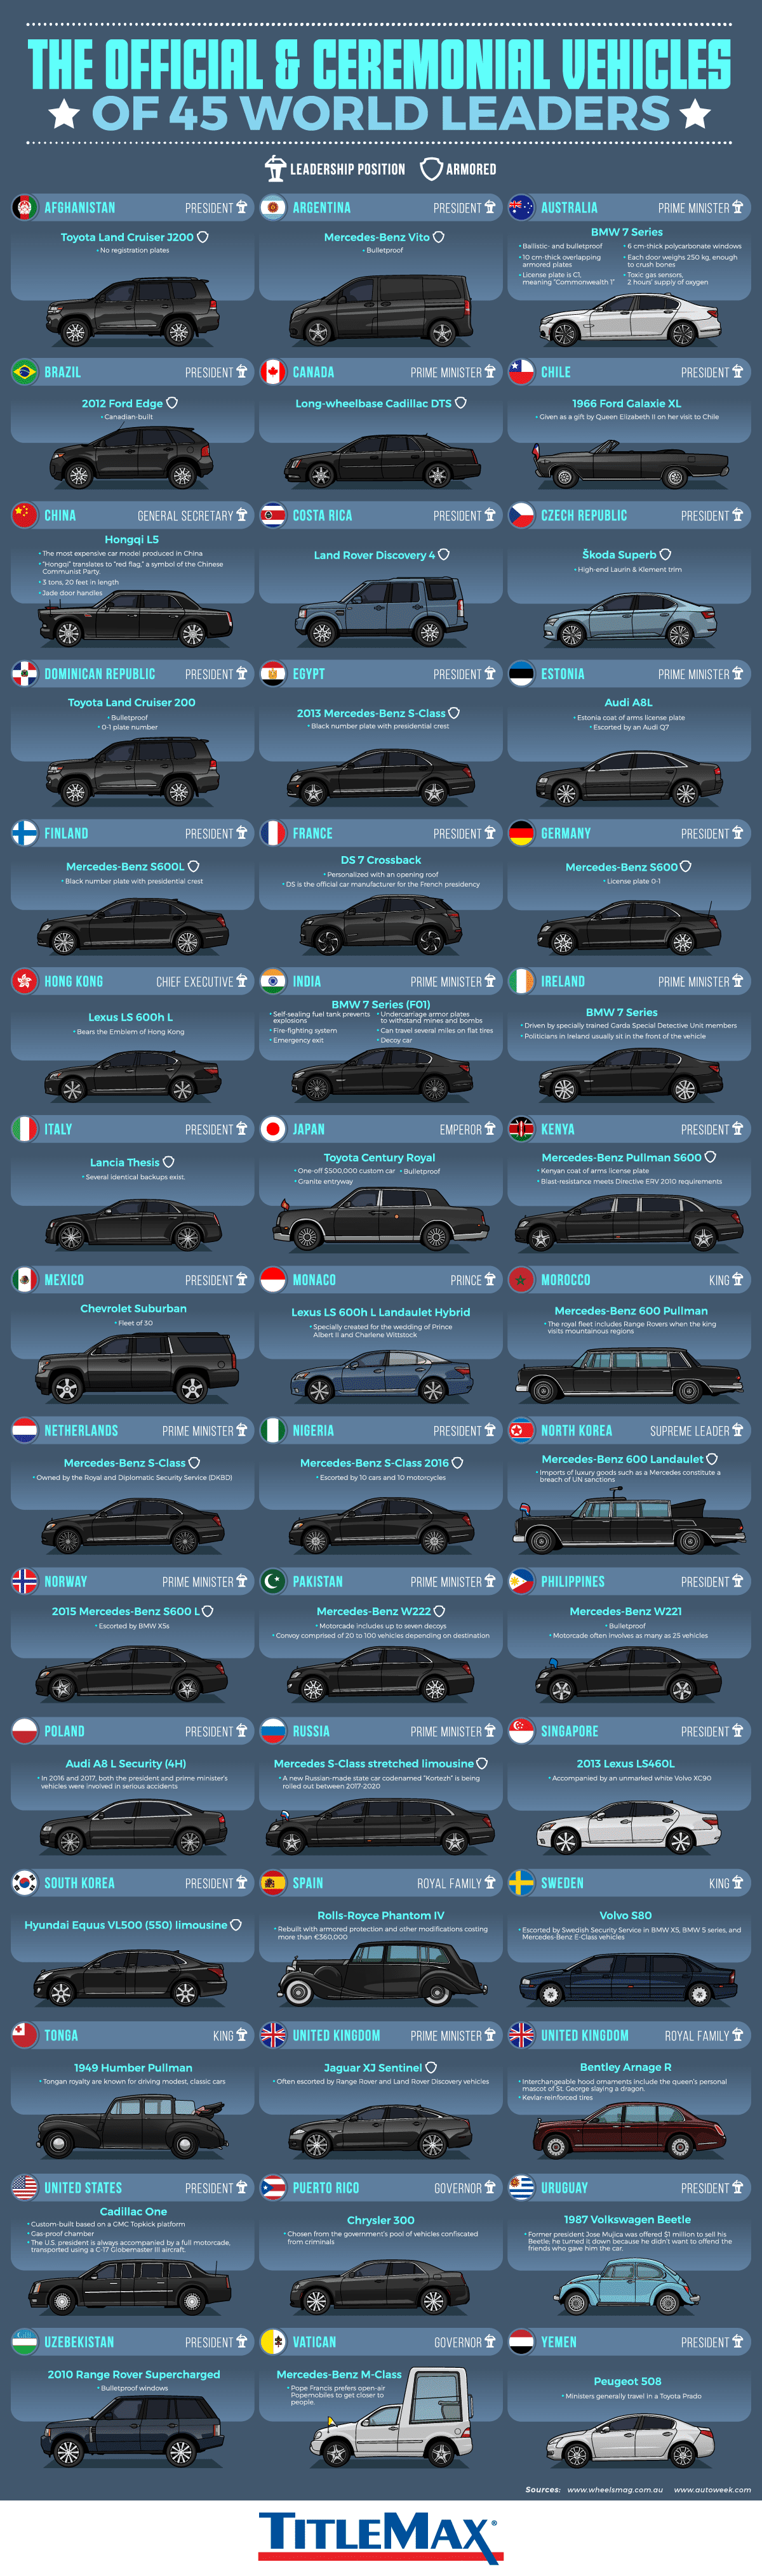 The Official and Ceremonial Vehicles of World Leaders Around the World